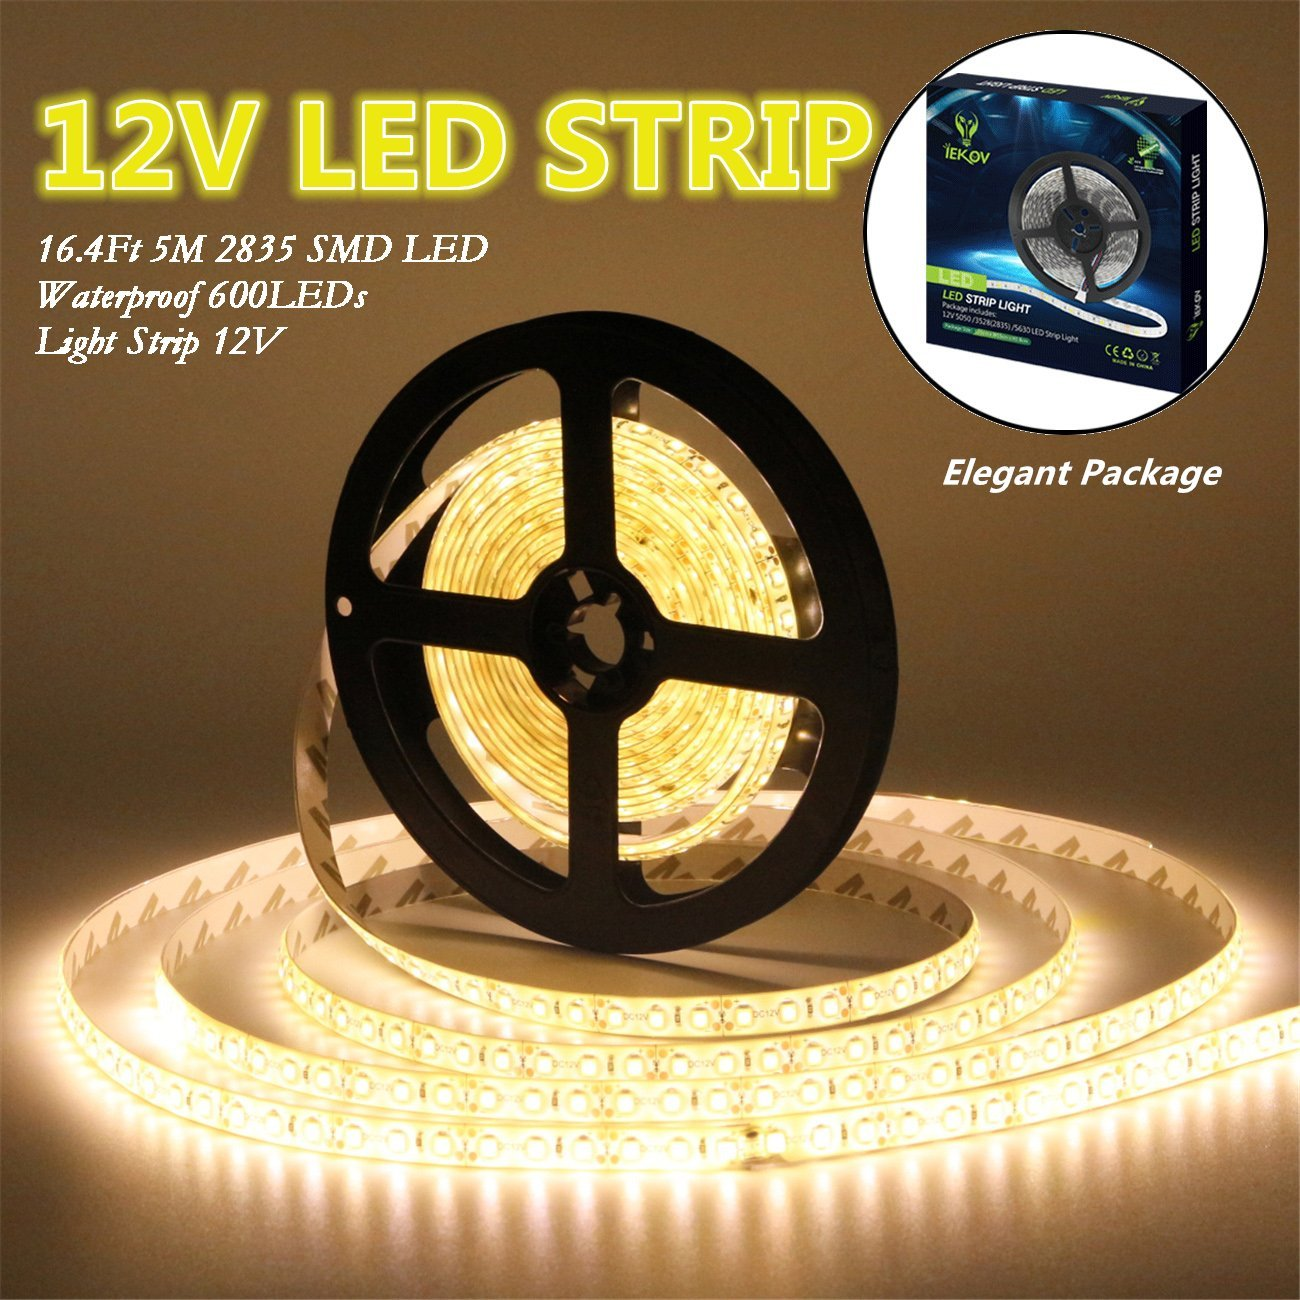 Led Strip Lights, IEKOV™ 2835 SMD 600LEDs Waterproof Flexible Xmas Decorative Lighting Strips, LED Tape, 5M 16.4Ft DC12V, 3 times brightness than SMD 3528 LED Light Strip (Warm White)